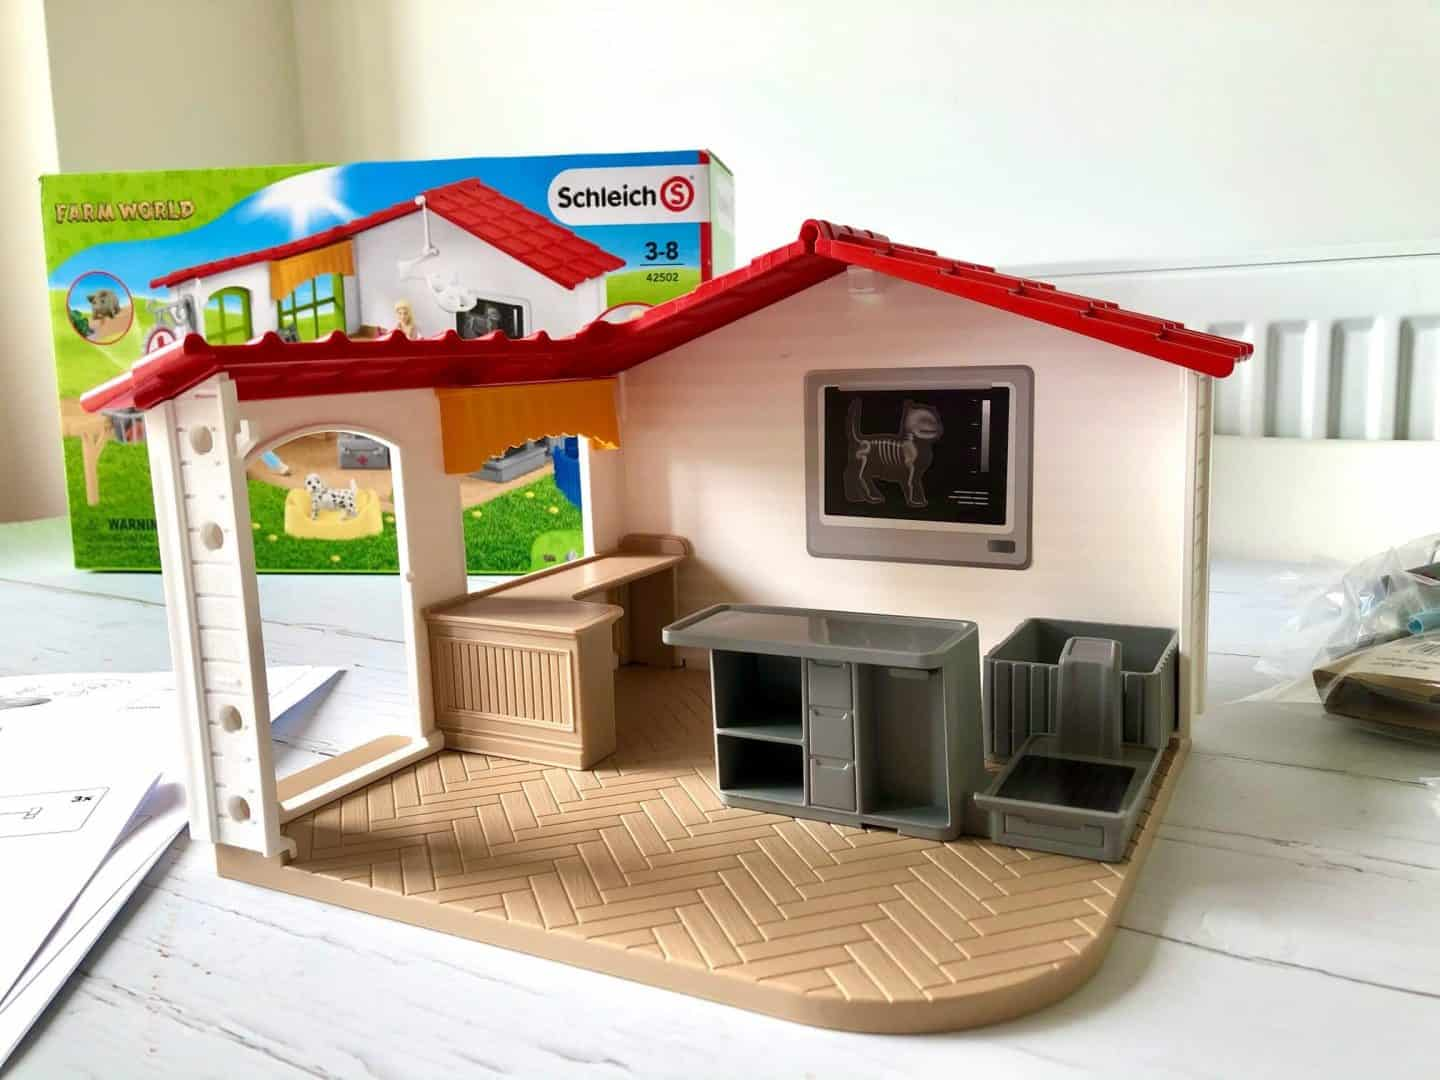 Schleich Farm World Playsets